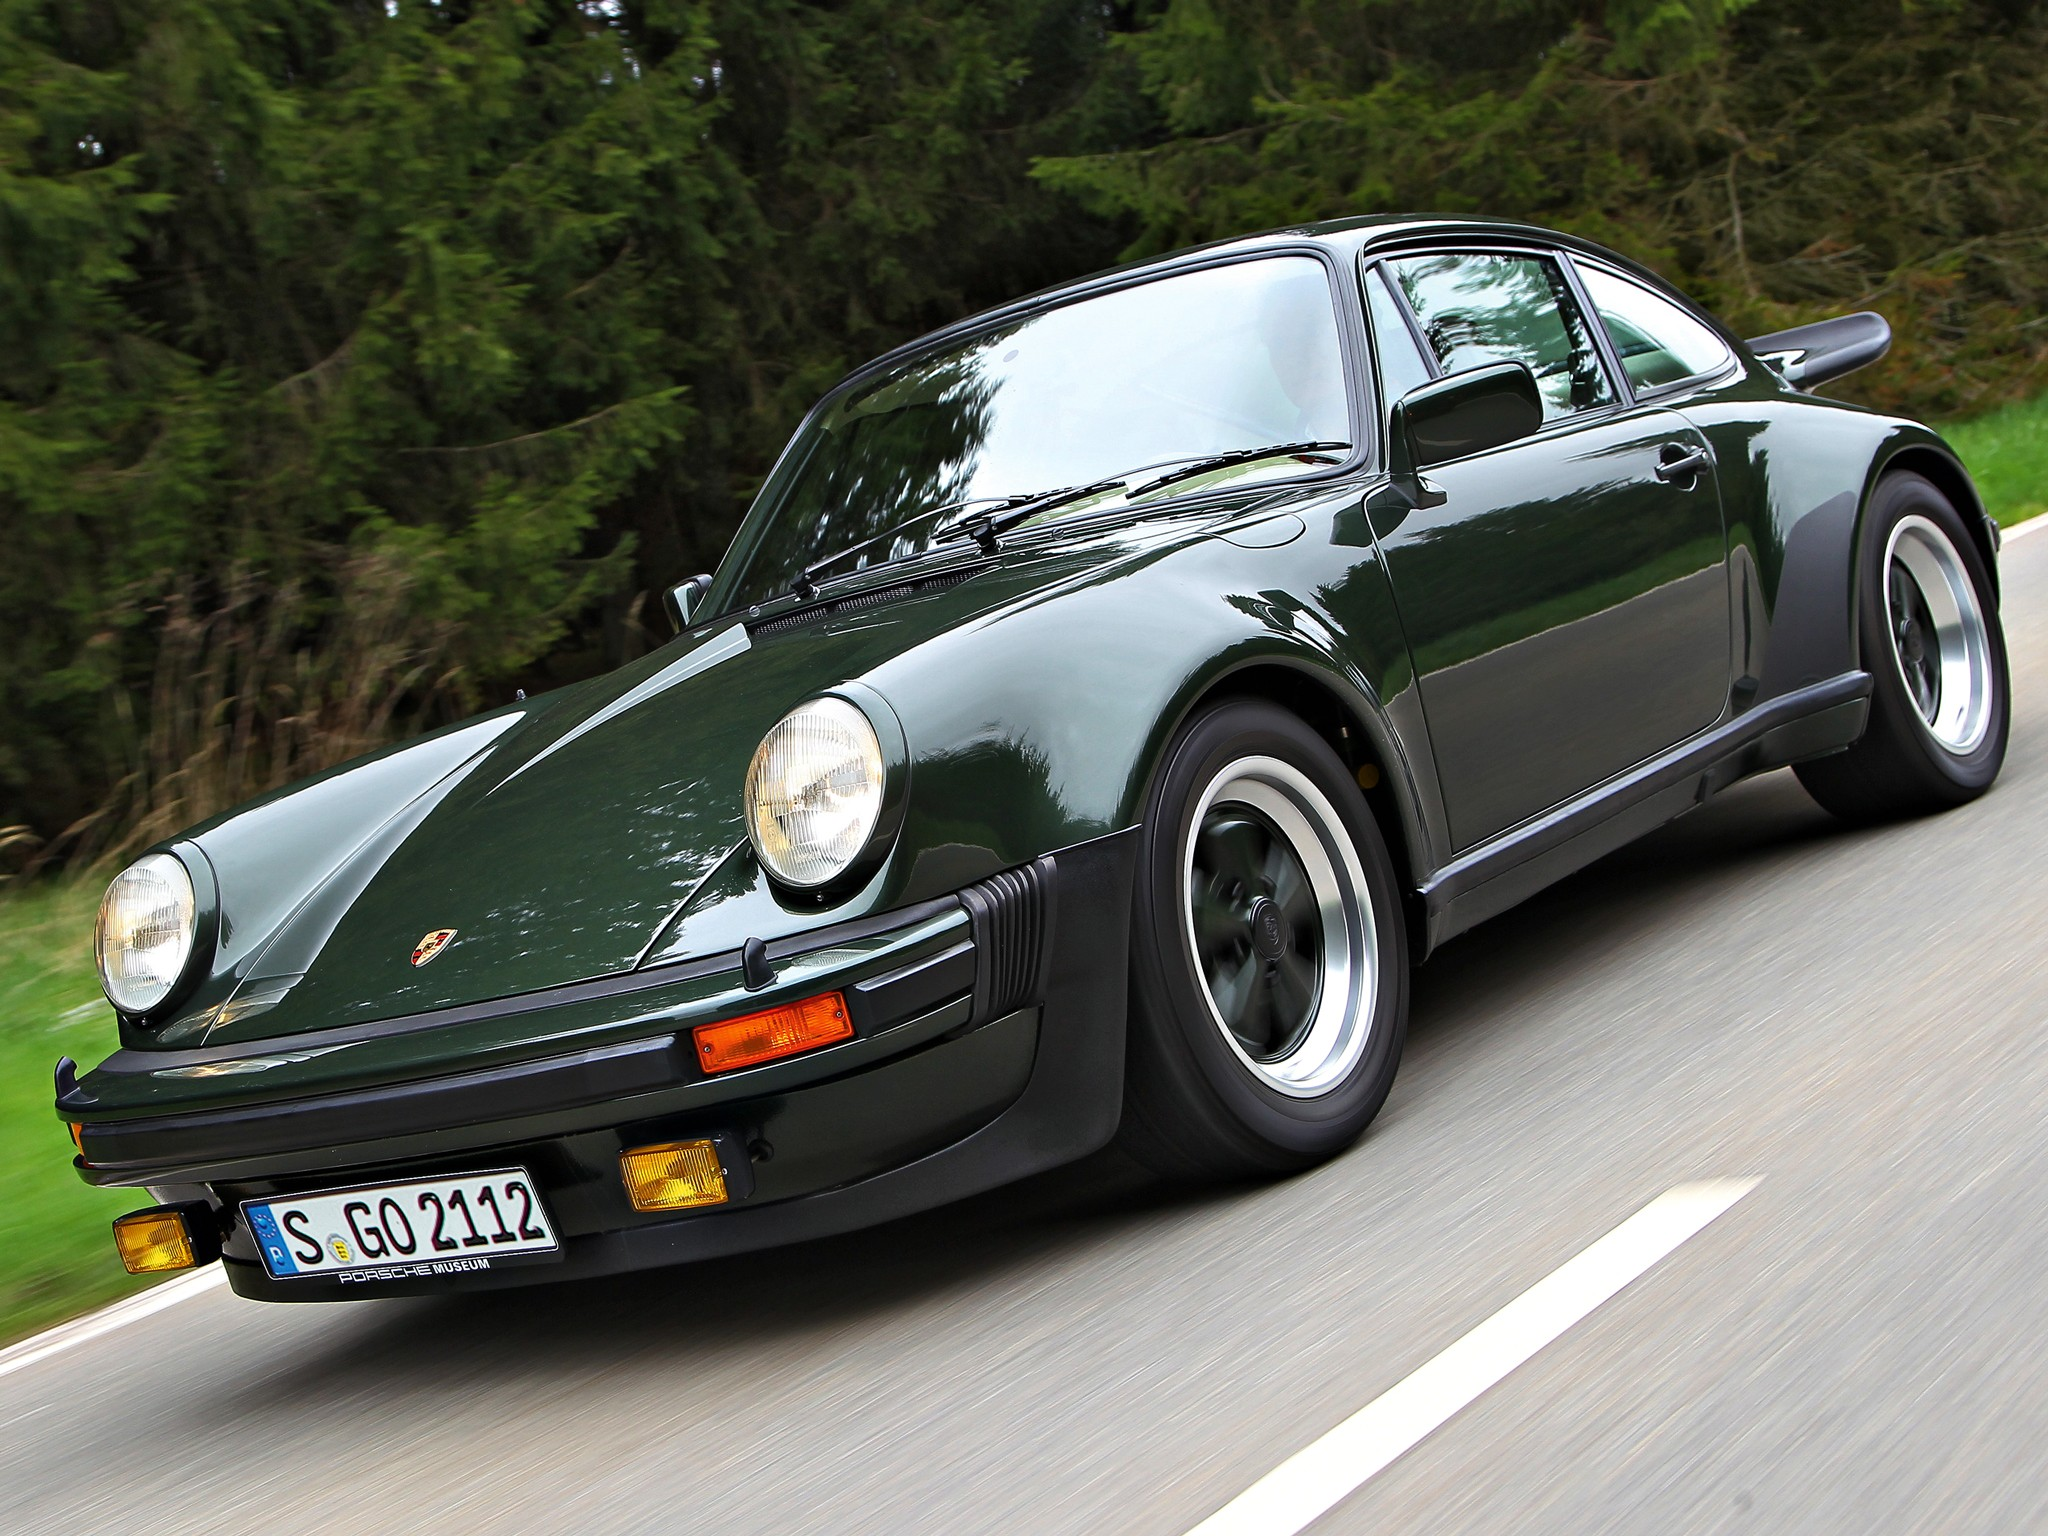 porsche 911 turbo 930 specs 1974 1975 1976 1977 autoevolution. Black Bedroom Furniture Sets. Home Design Ideas